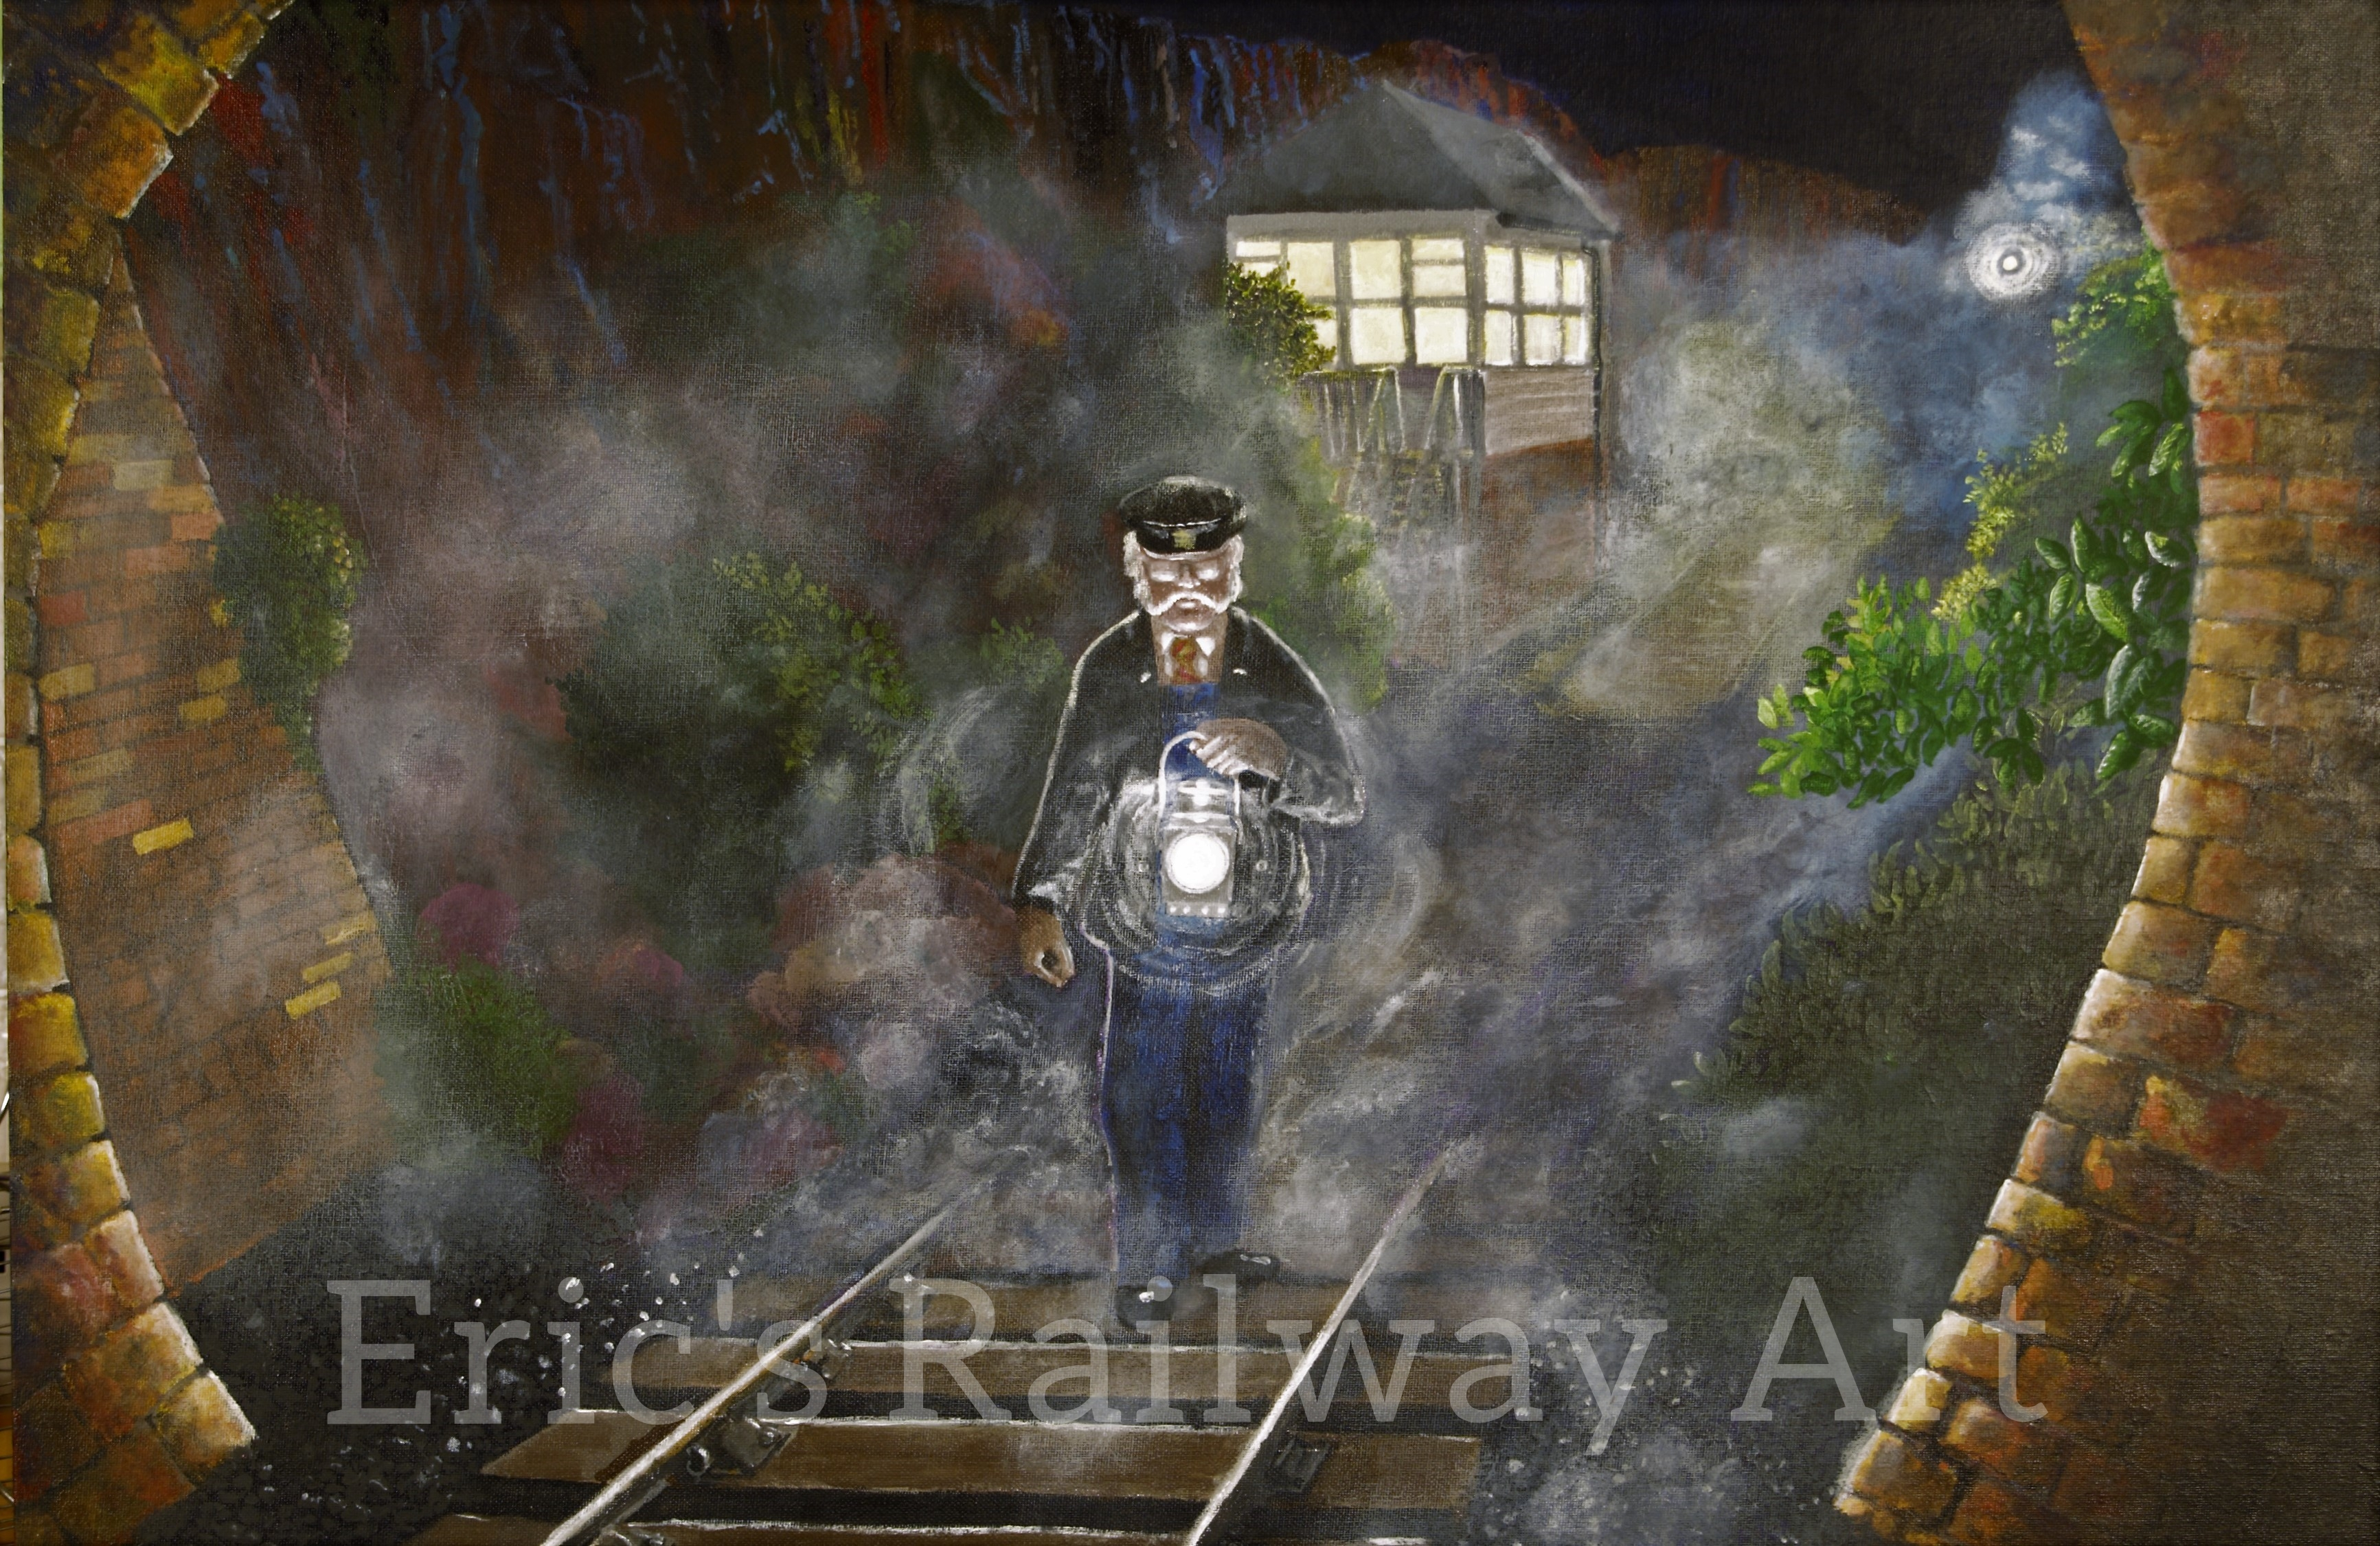 Eric's Railway Art - Ghostly